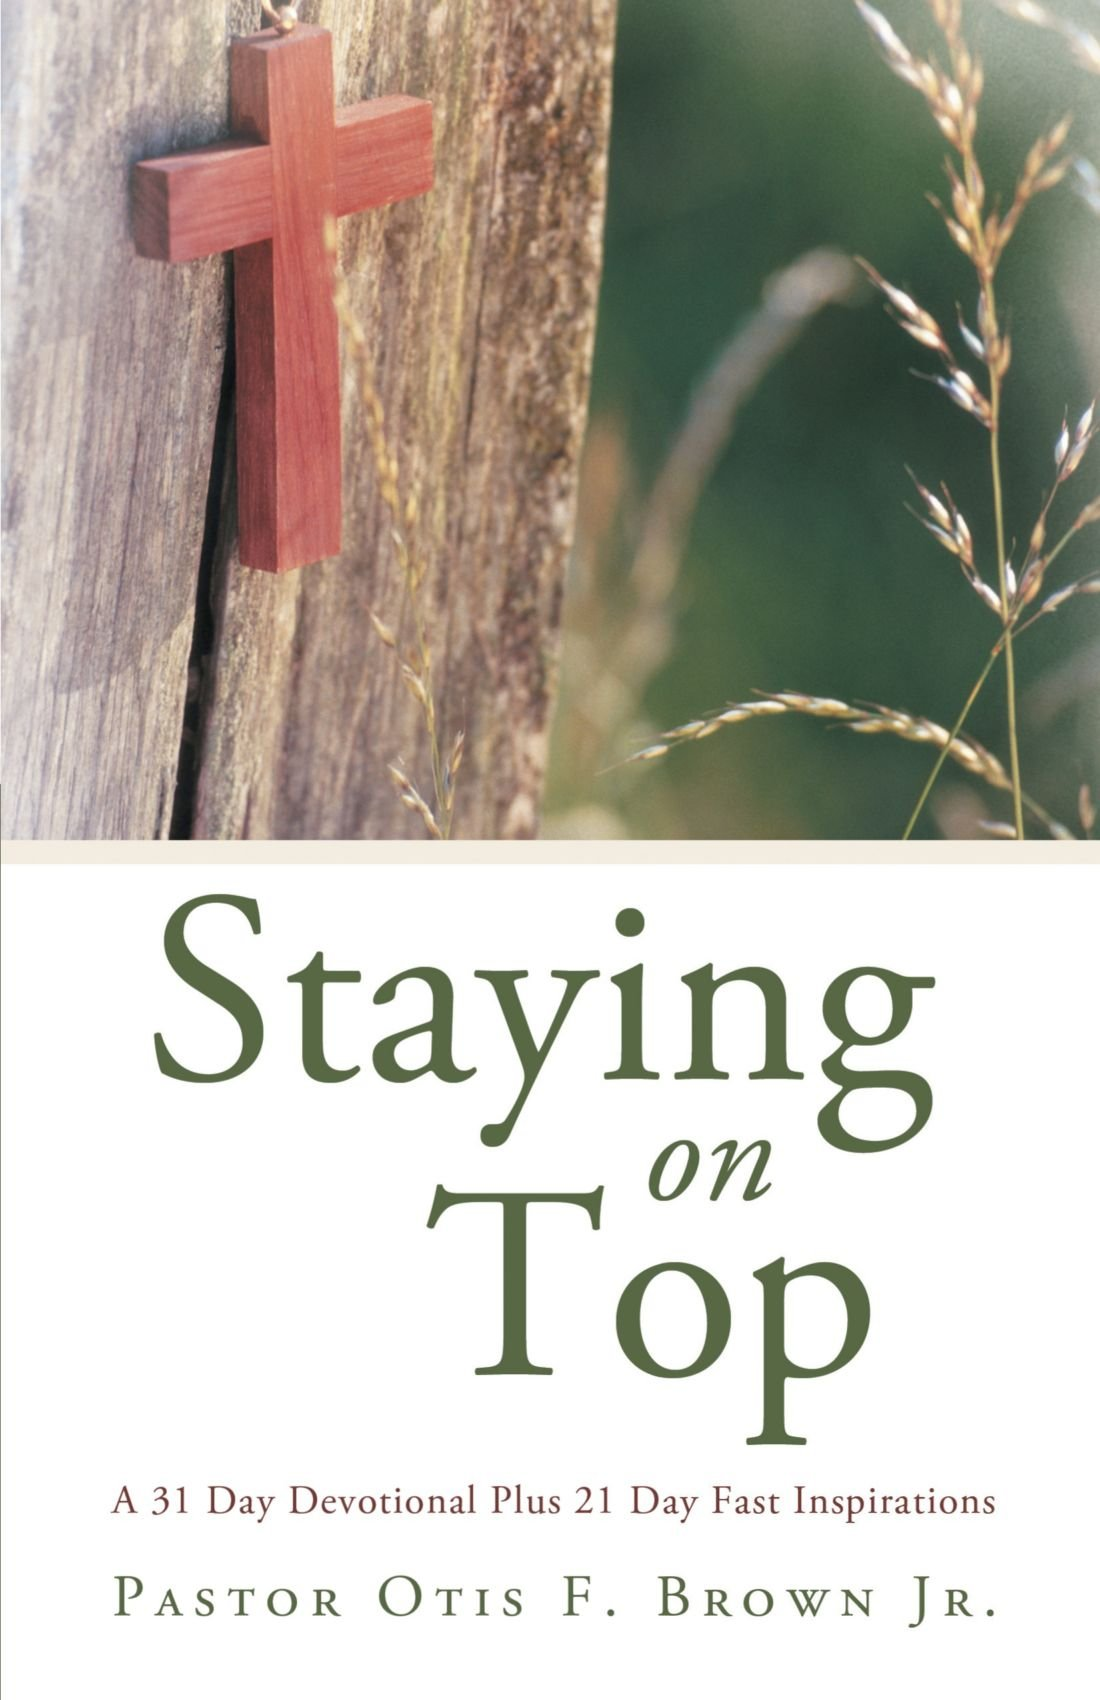 Staying on Top: A 31 Day Devotional Plus 21 Day Fast Inspirations PDF